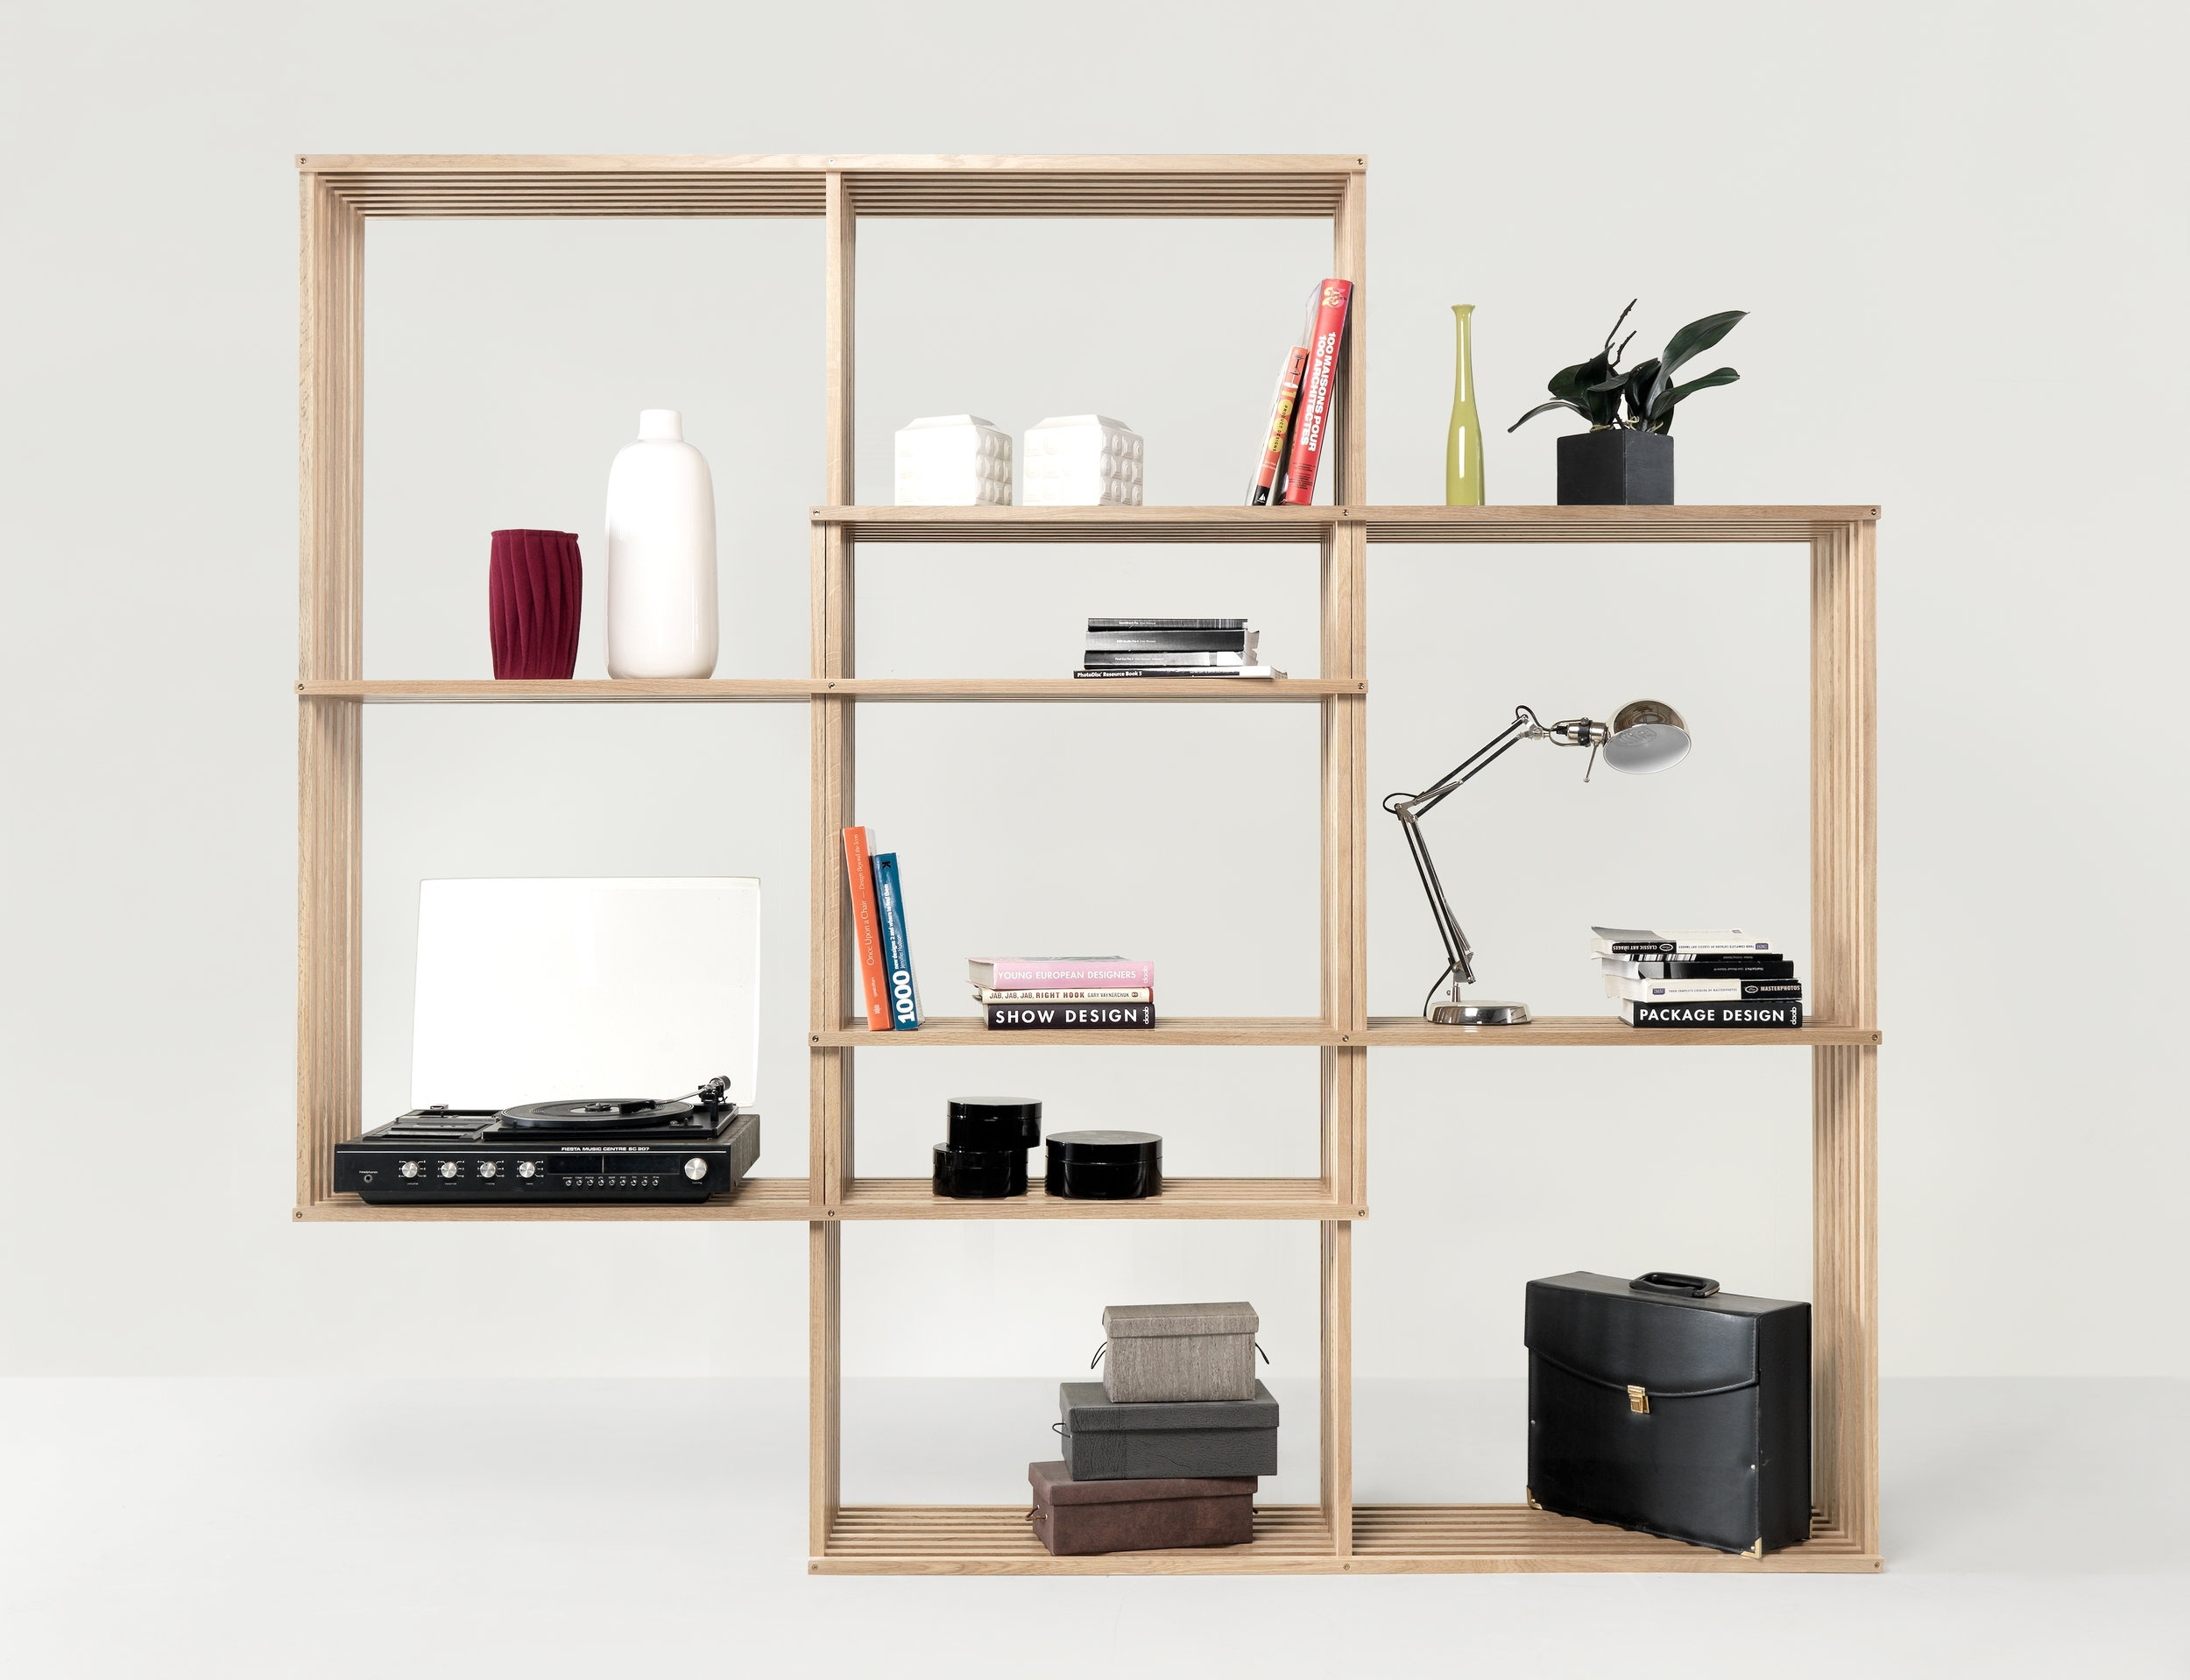 X2  from wewood is a smart bookshelf which allows increasing the width and height anytime, creating new storage compartments.